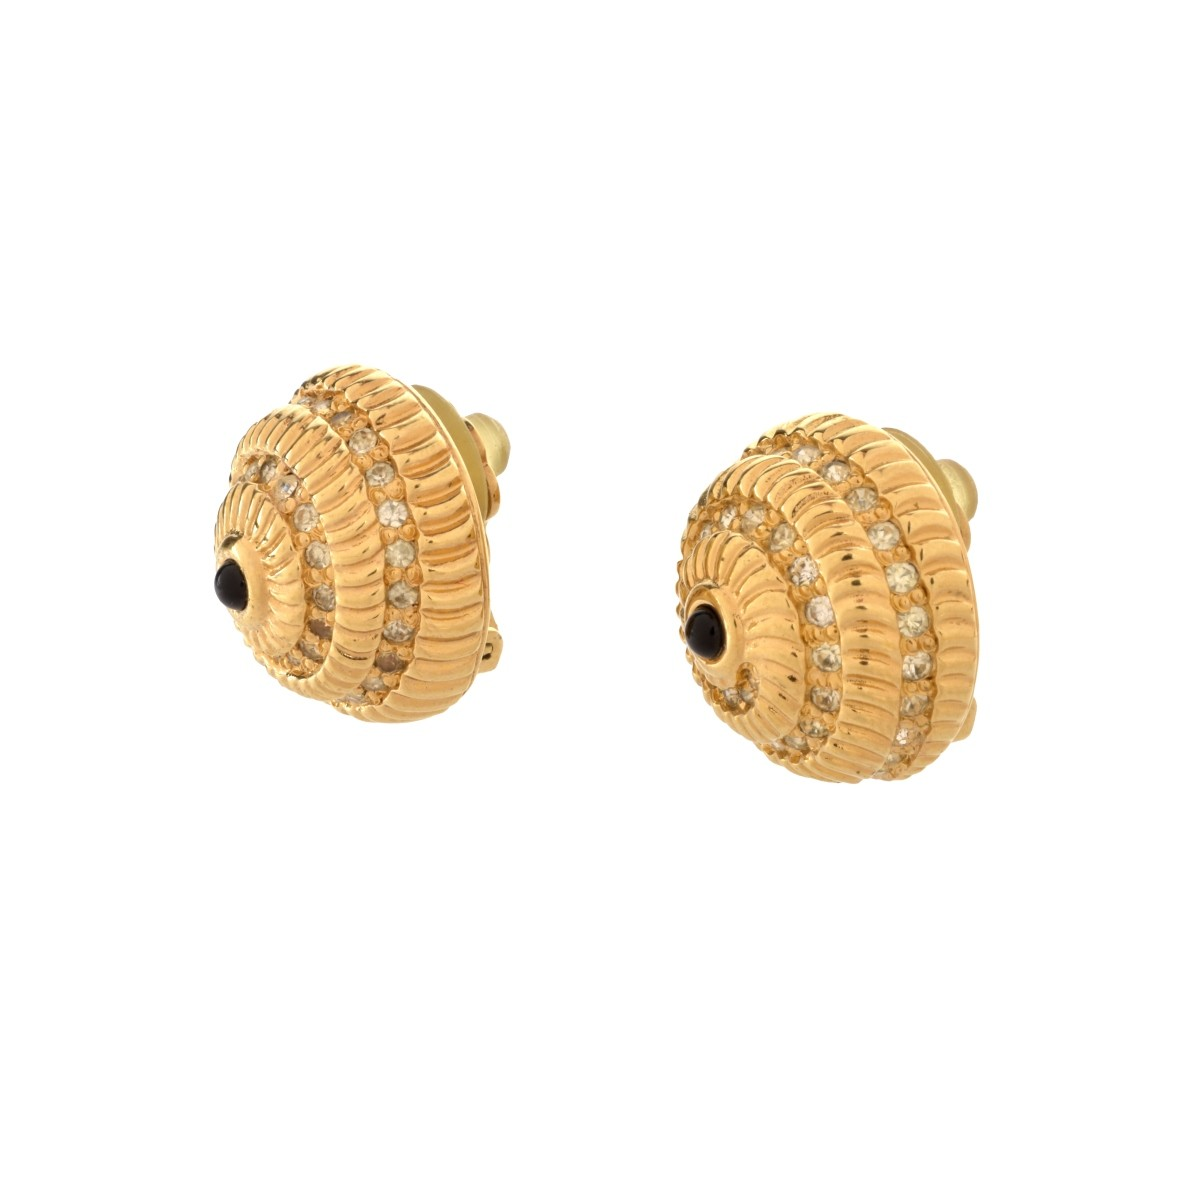 Judith Leiber Earrings